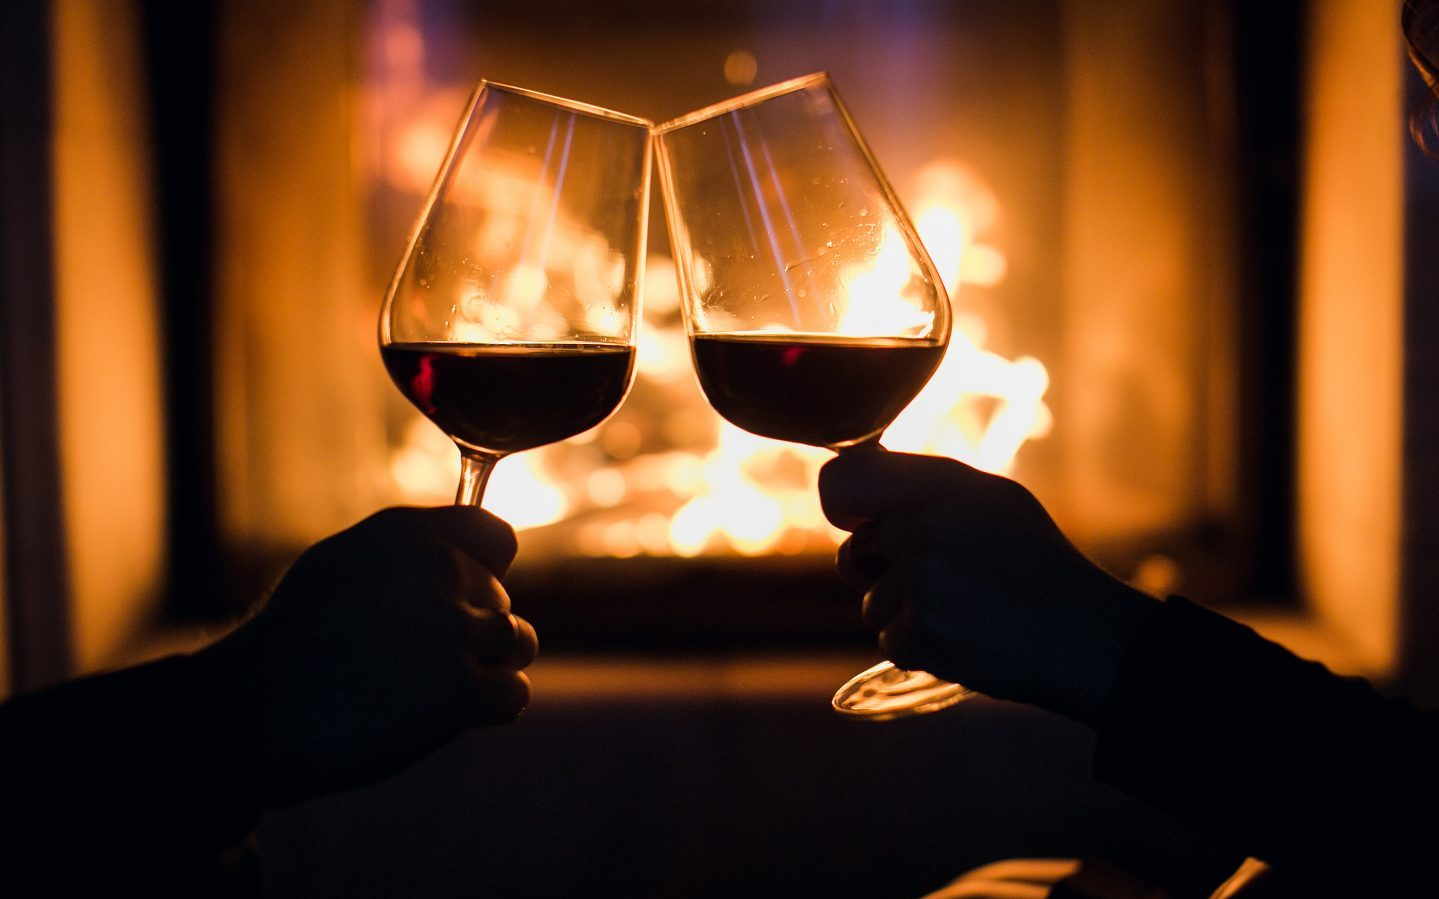 a couple toasting with two wine glasses in front of a fireplace